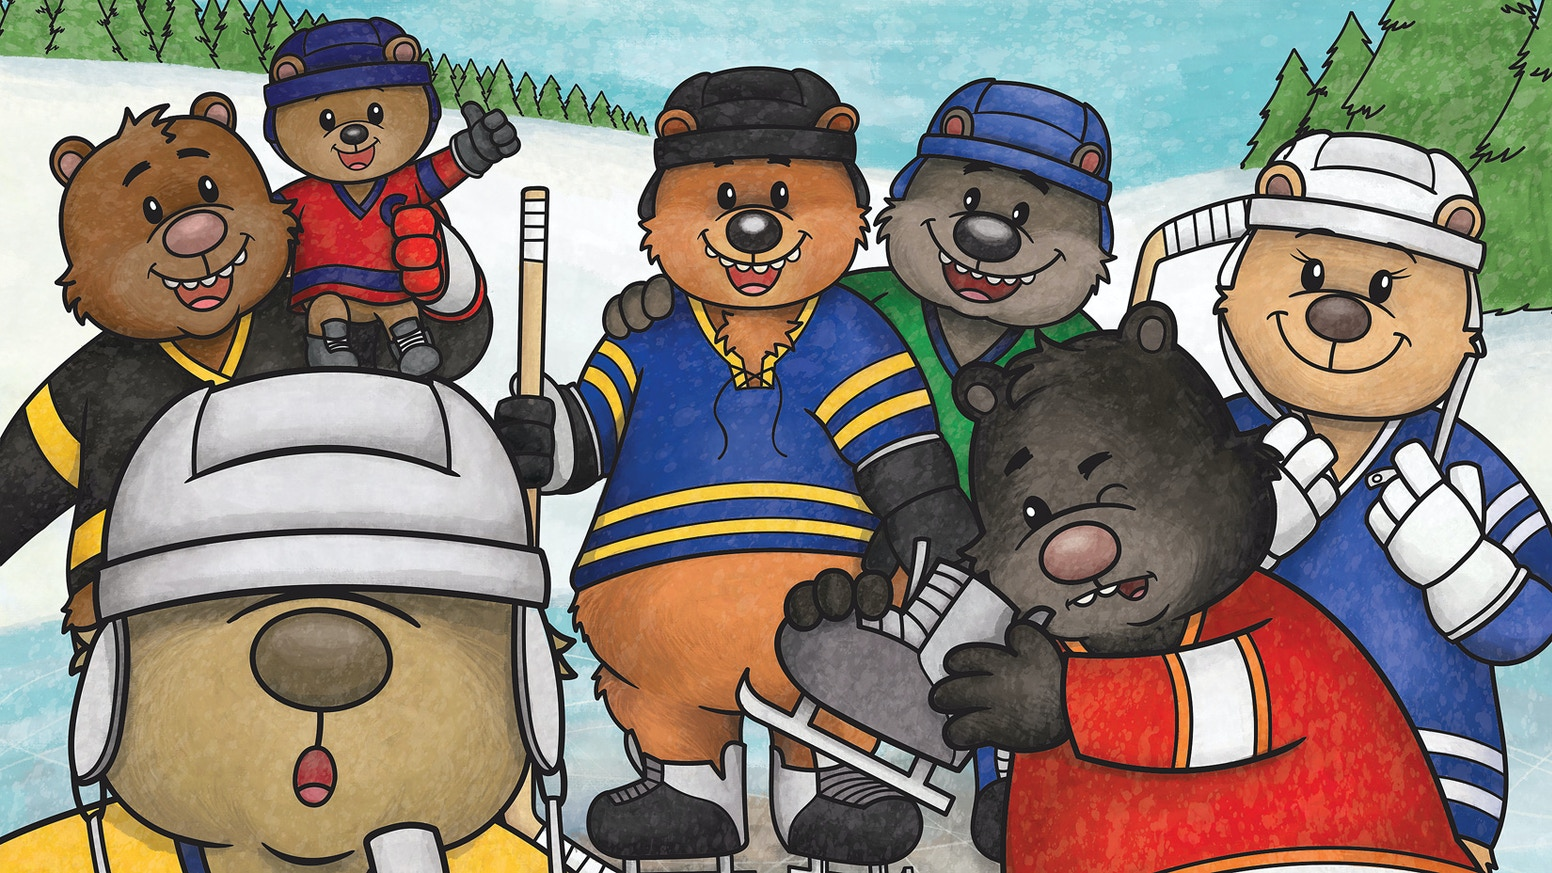 Every year, right before hibernation, all the bears in the forest gather for a rollicking game of BEAR HOCKEY!